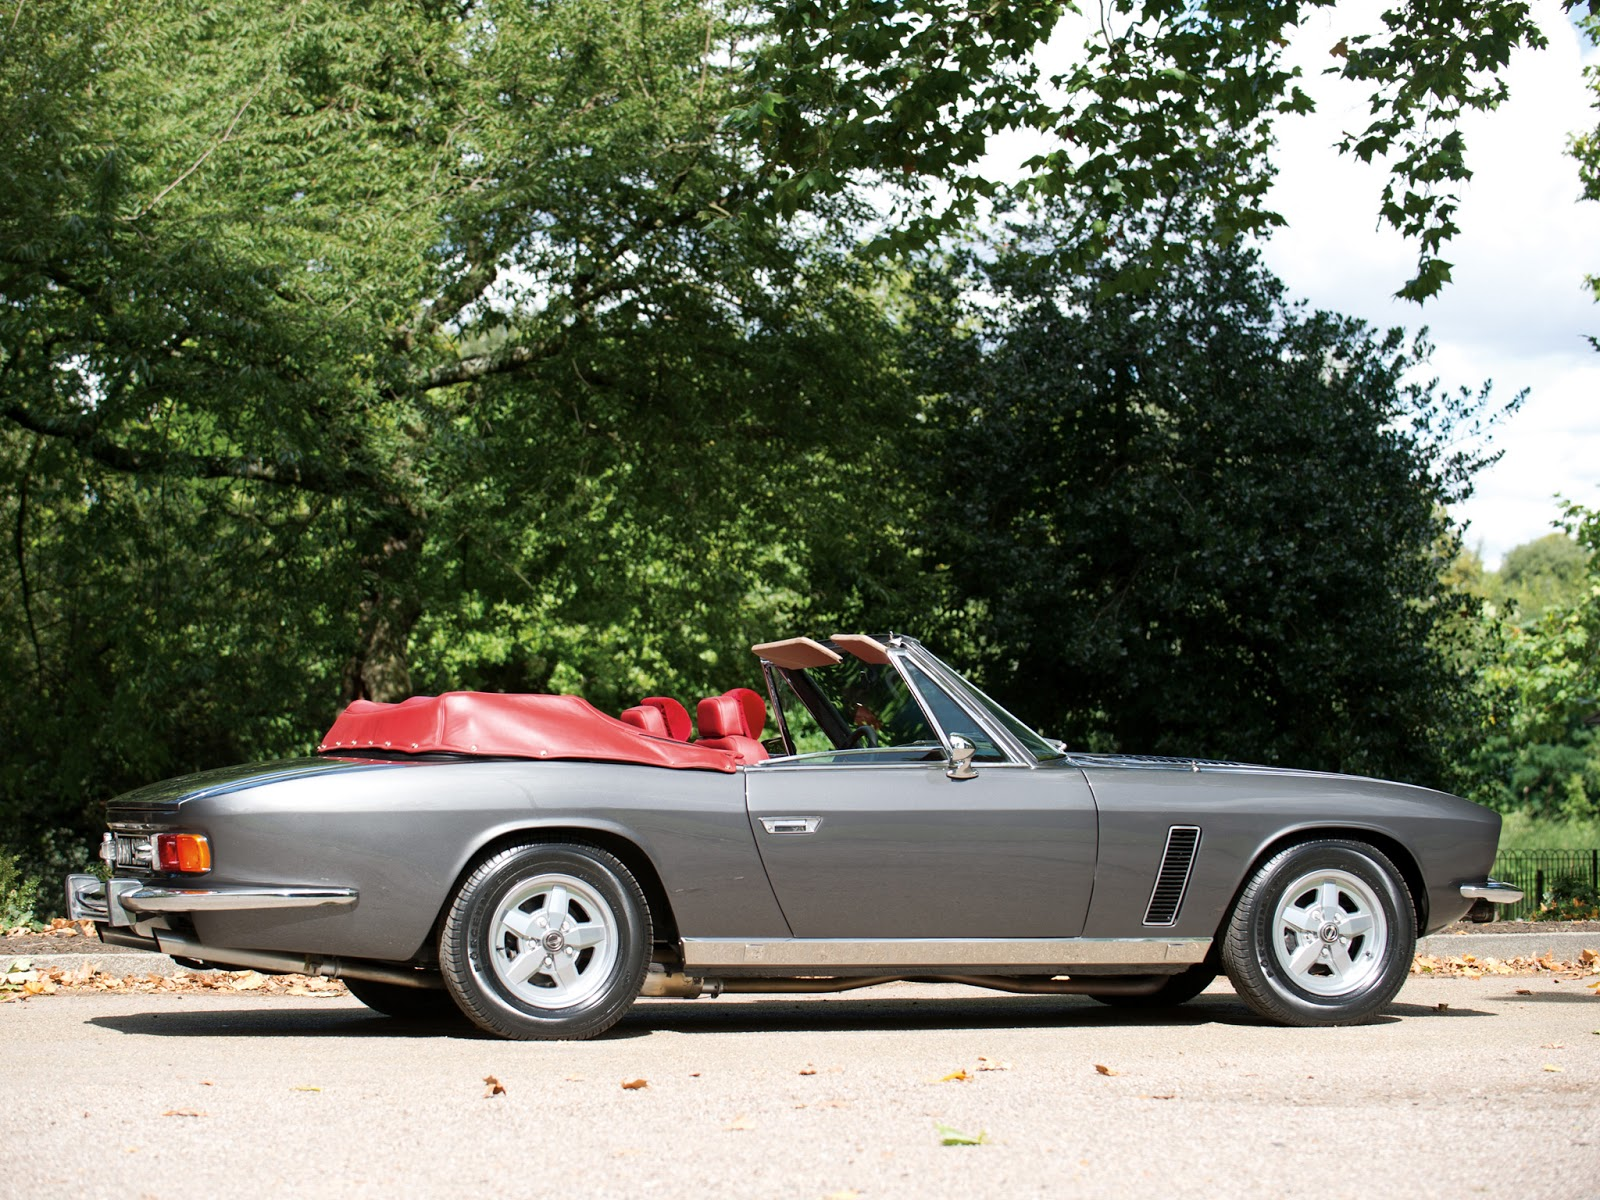 1974-Jensen-Interceptor-III-convertible-7.2-04 Interesting Tvr Griffith 500 Ignition Timing Cars Trend